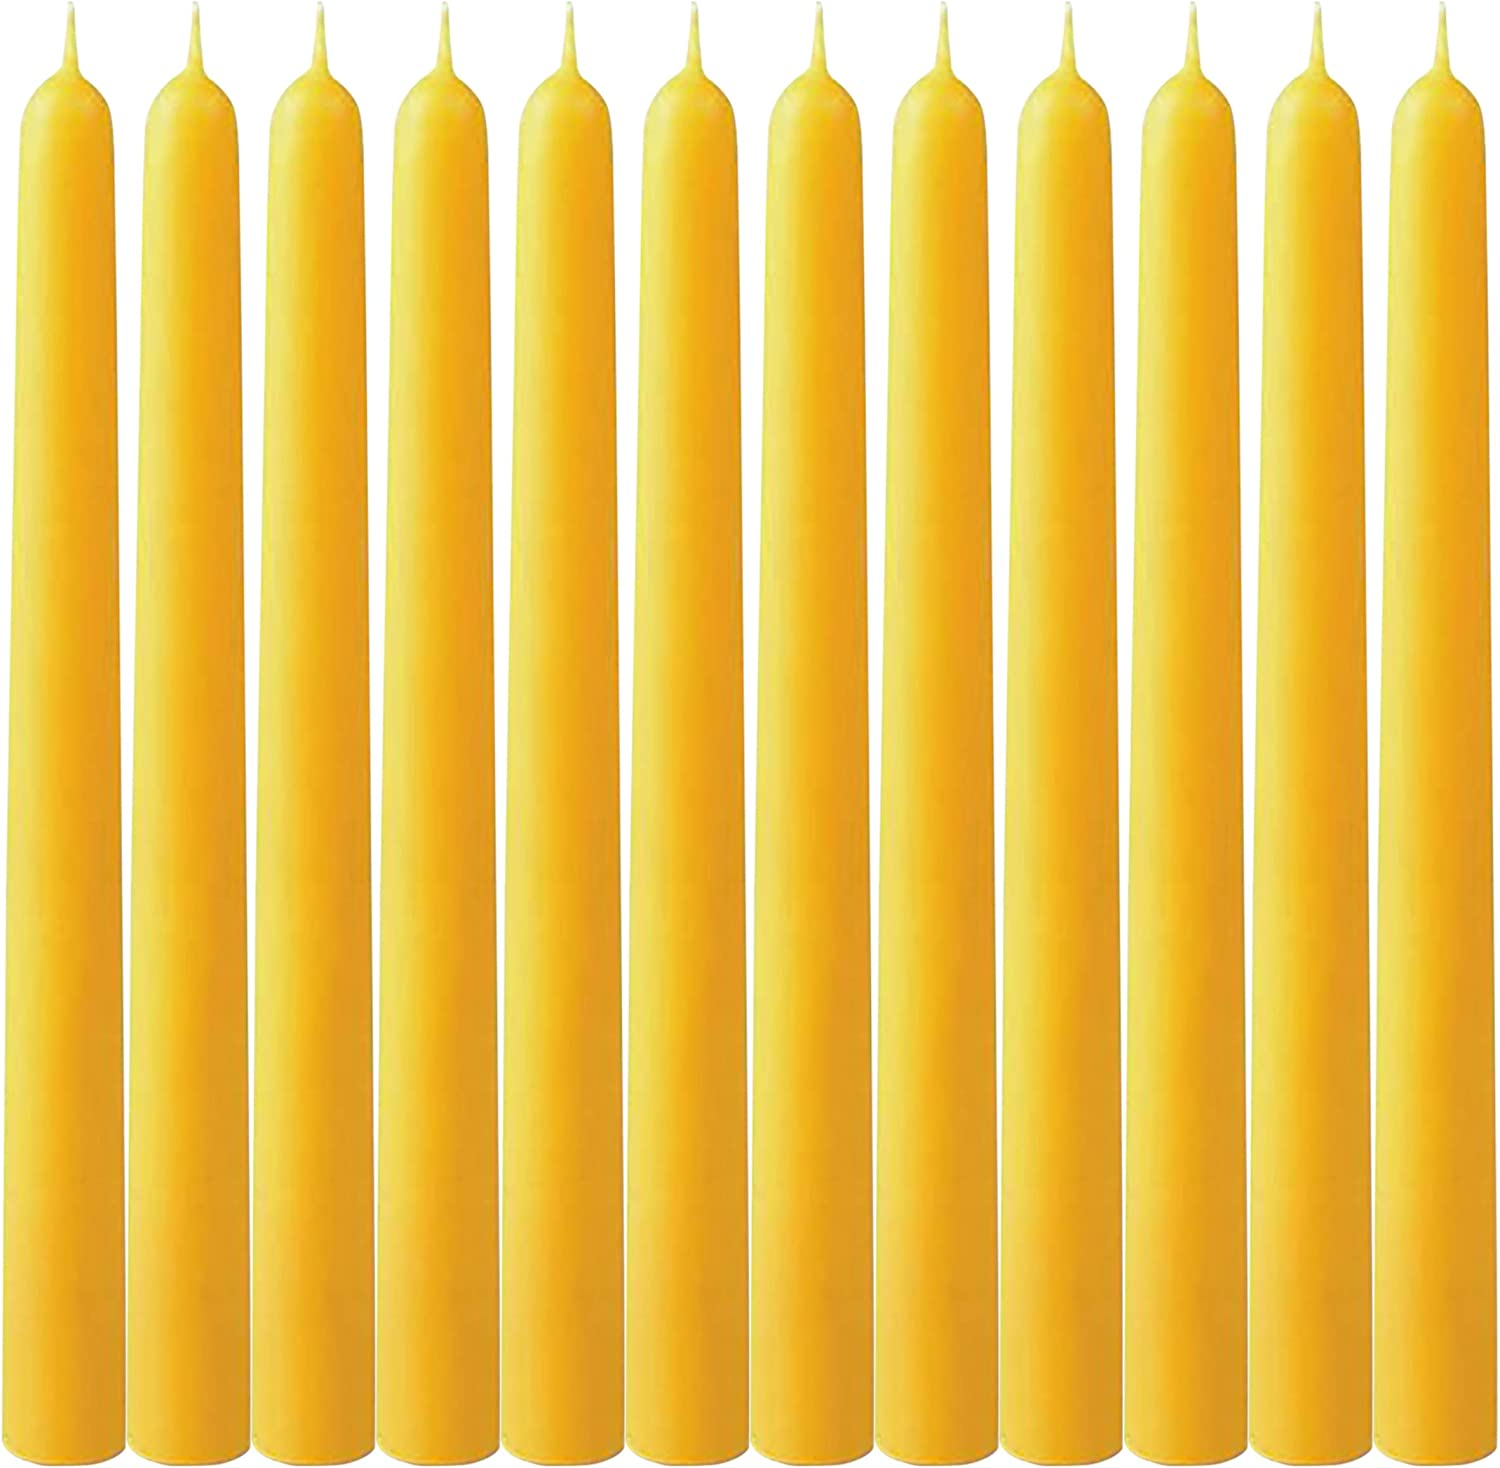 """Pack of 12 Beeswax Taper Candles- 10"""" Beeswax Taper Candles Handmade, All Natural, 100% Pure Bee Wax Candle - Huge Taper Candles Golden Yellow –8 Hour Burn Time (12)"""